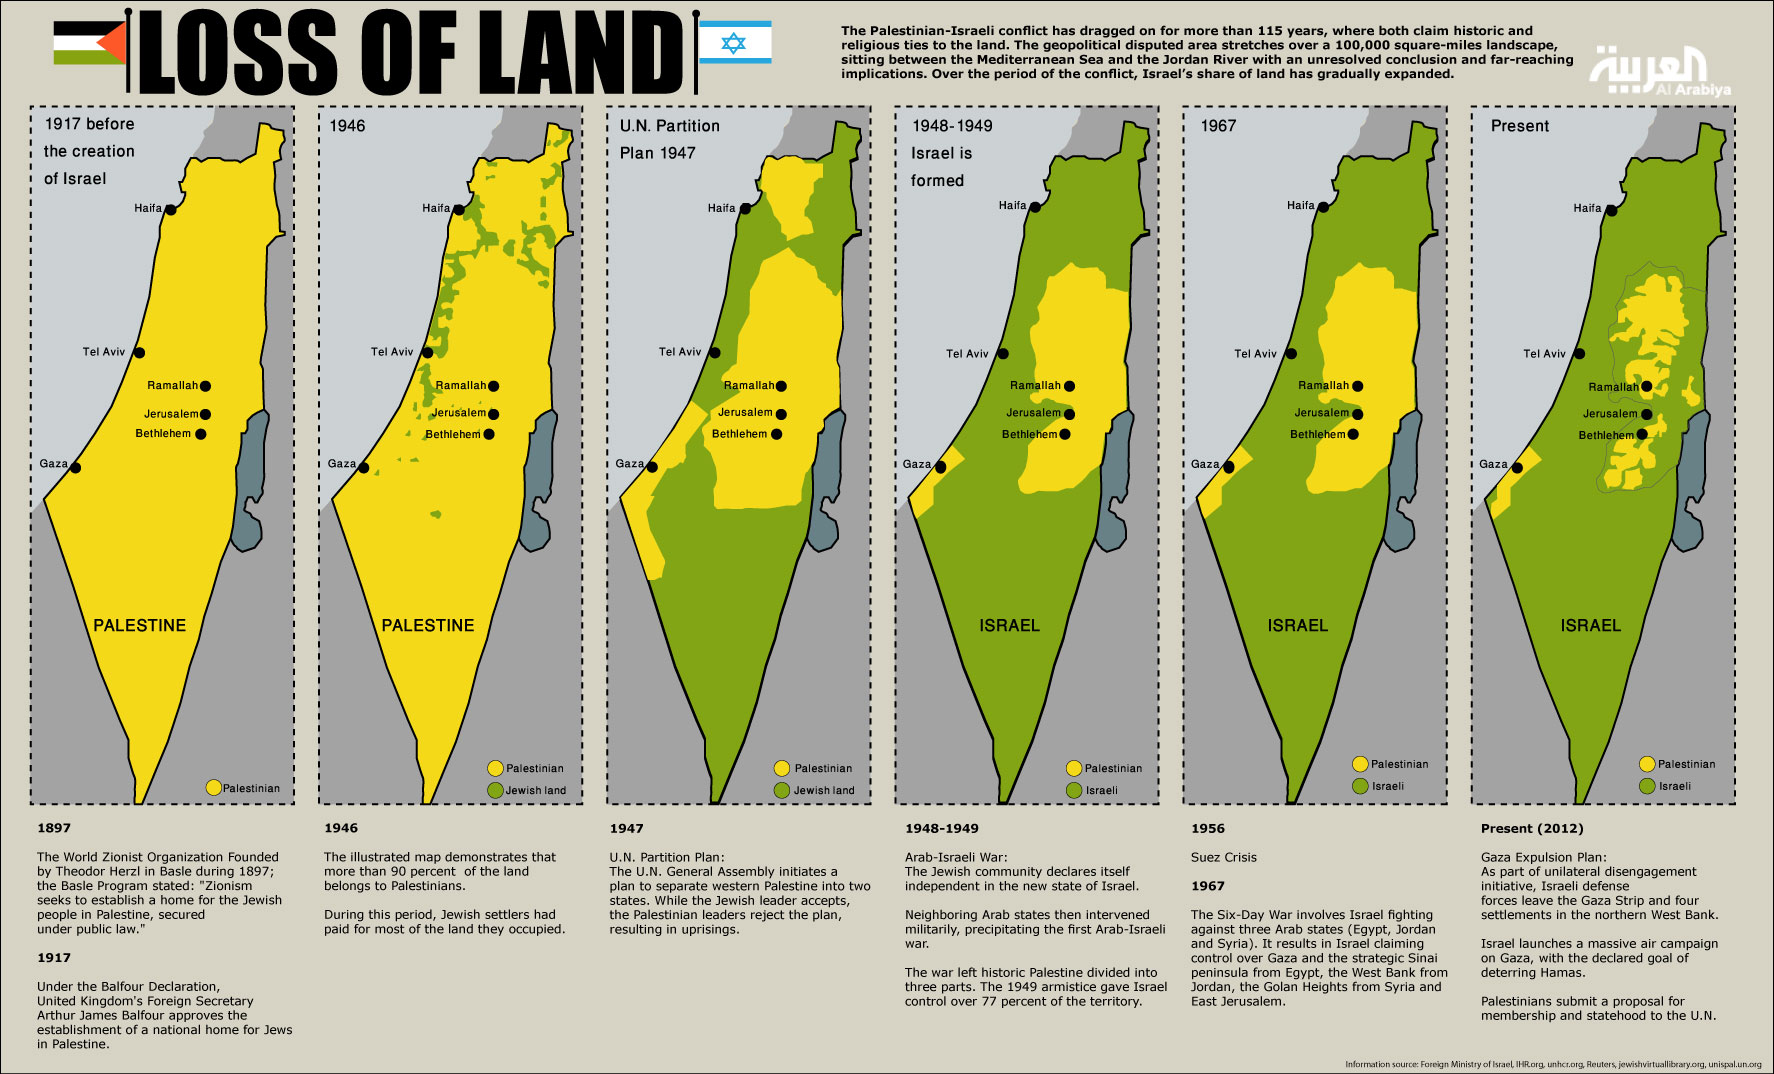 israel-palestine_map_LossofLand